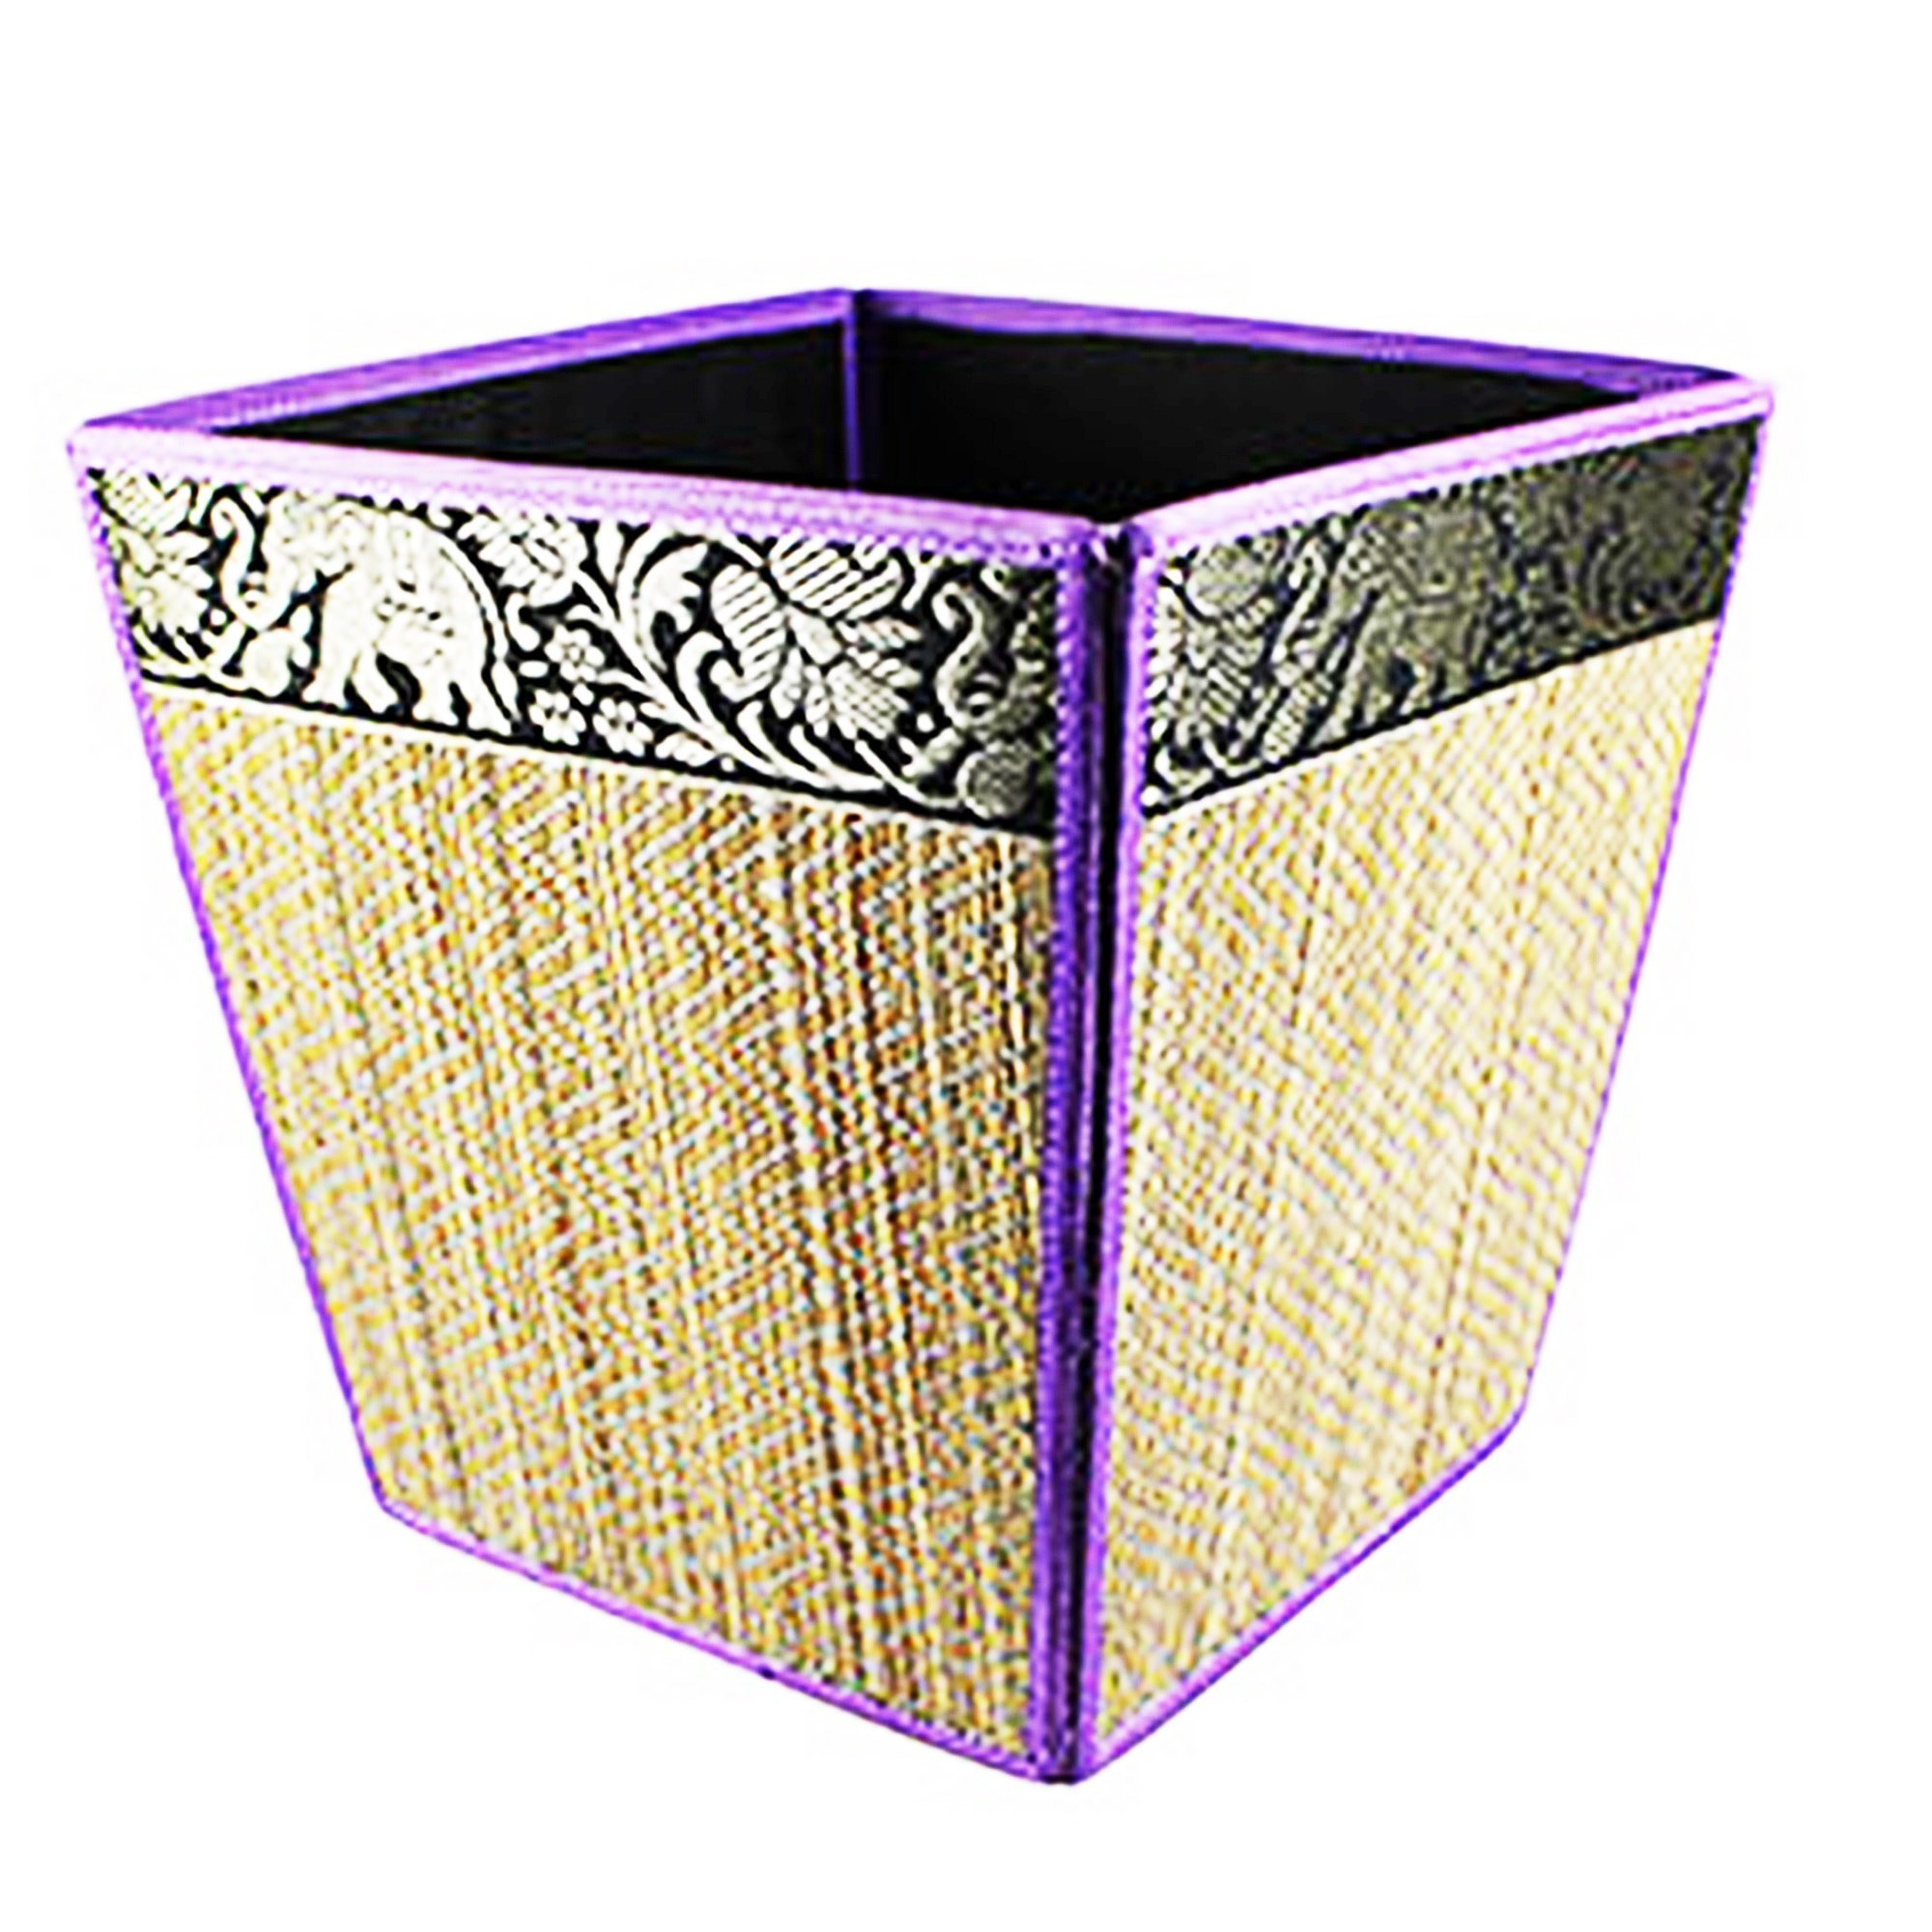 chantubtimplaza Waste Basket Thai Elephant Silk Reed Paper Bin Home Decor Purple Color by chantubtimplaza